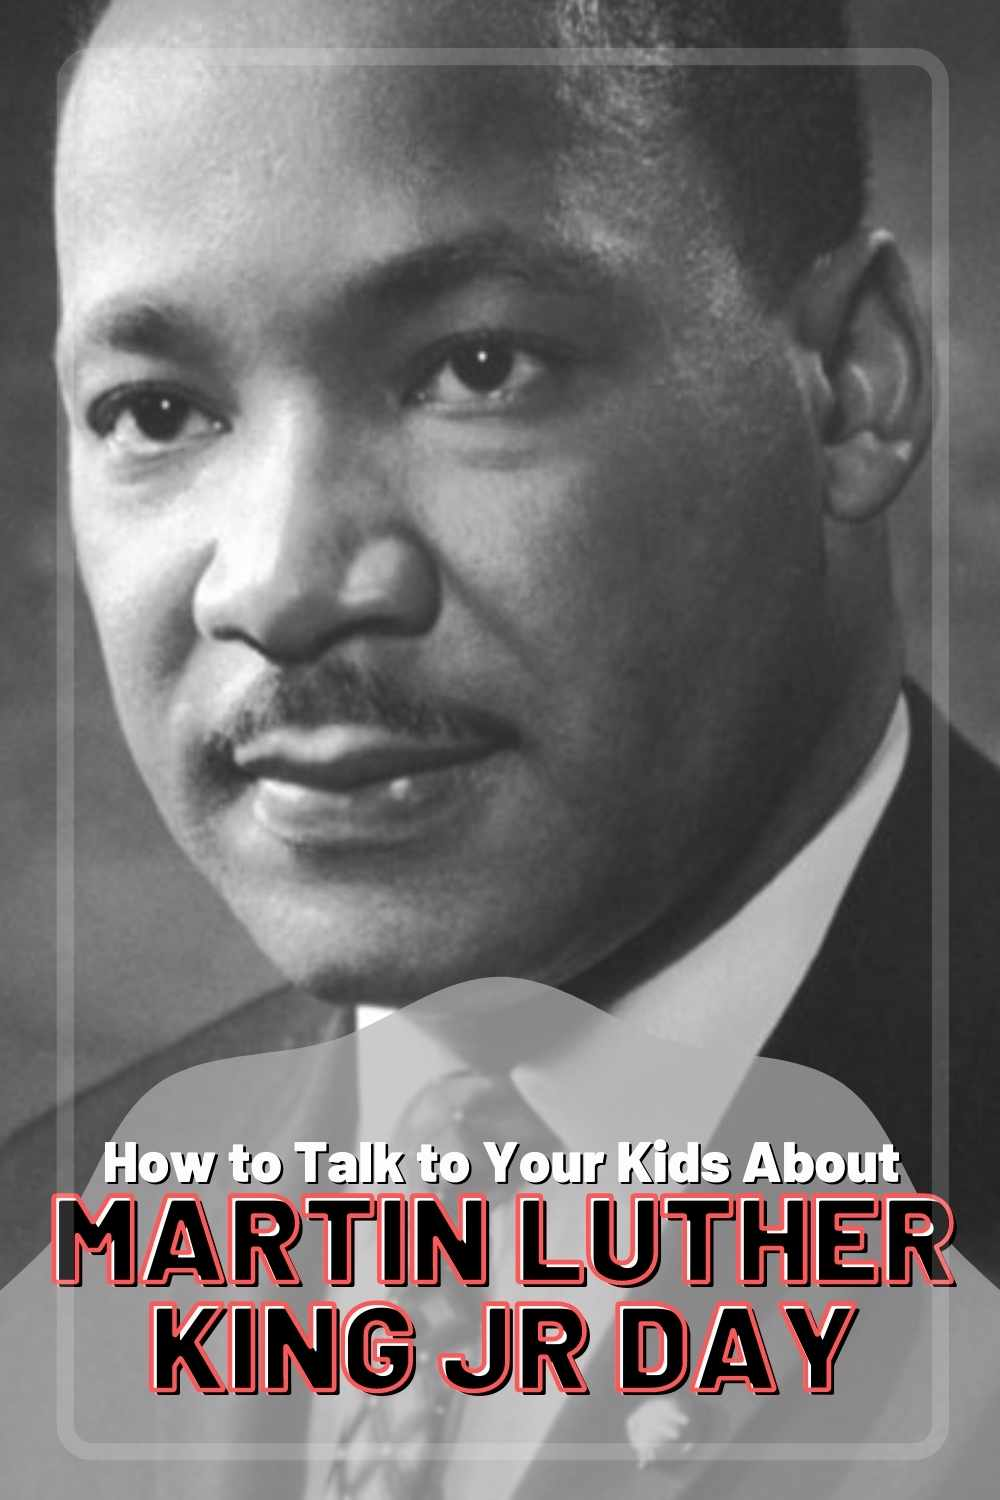 How to talk to your kids about Martin Luther King Jr Day